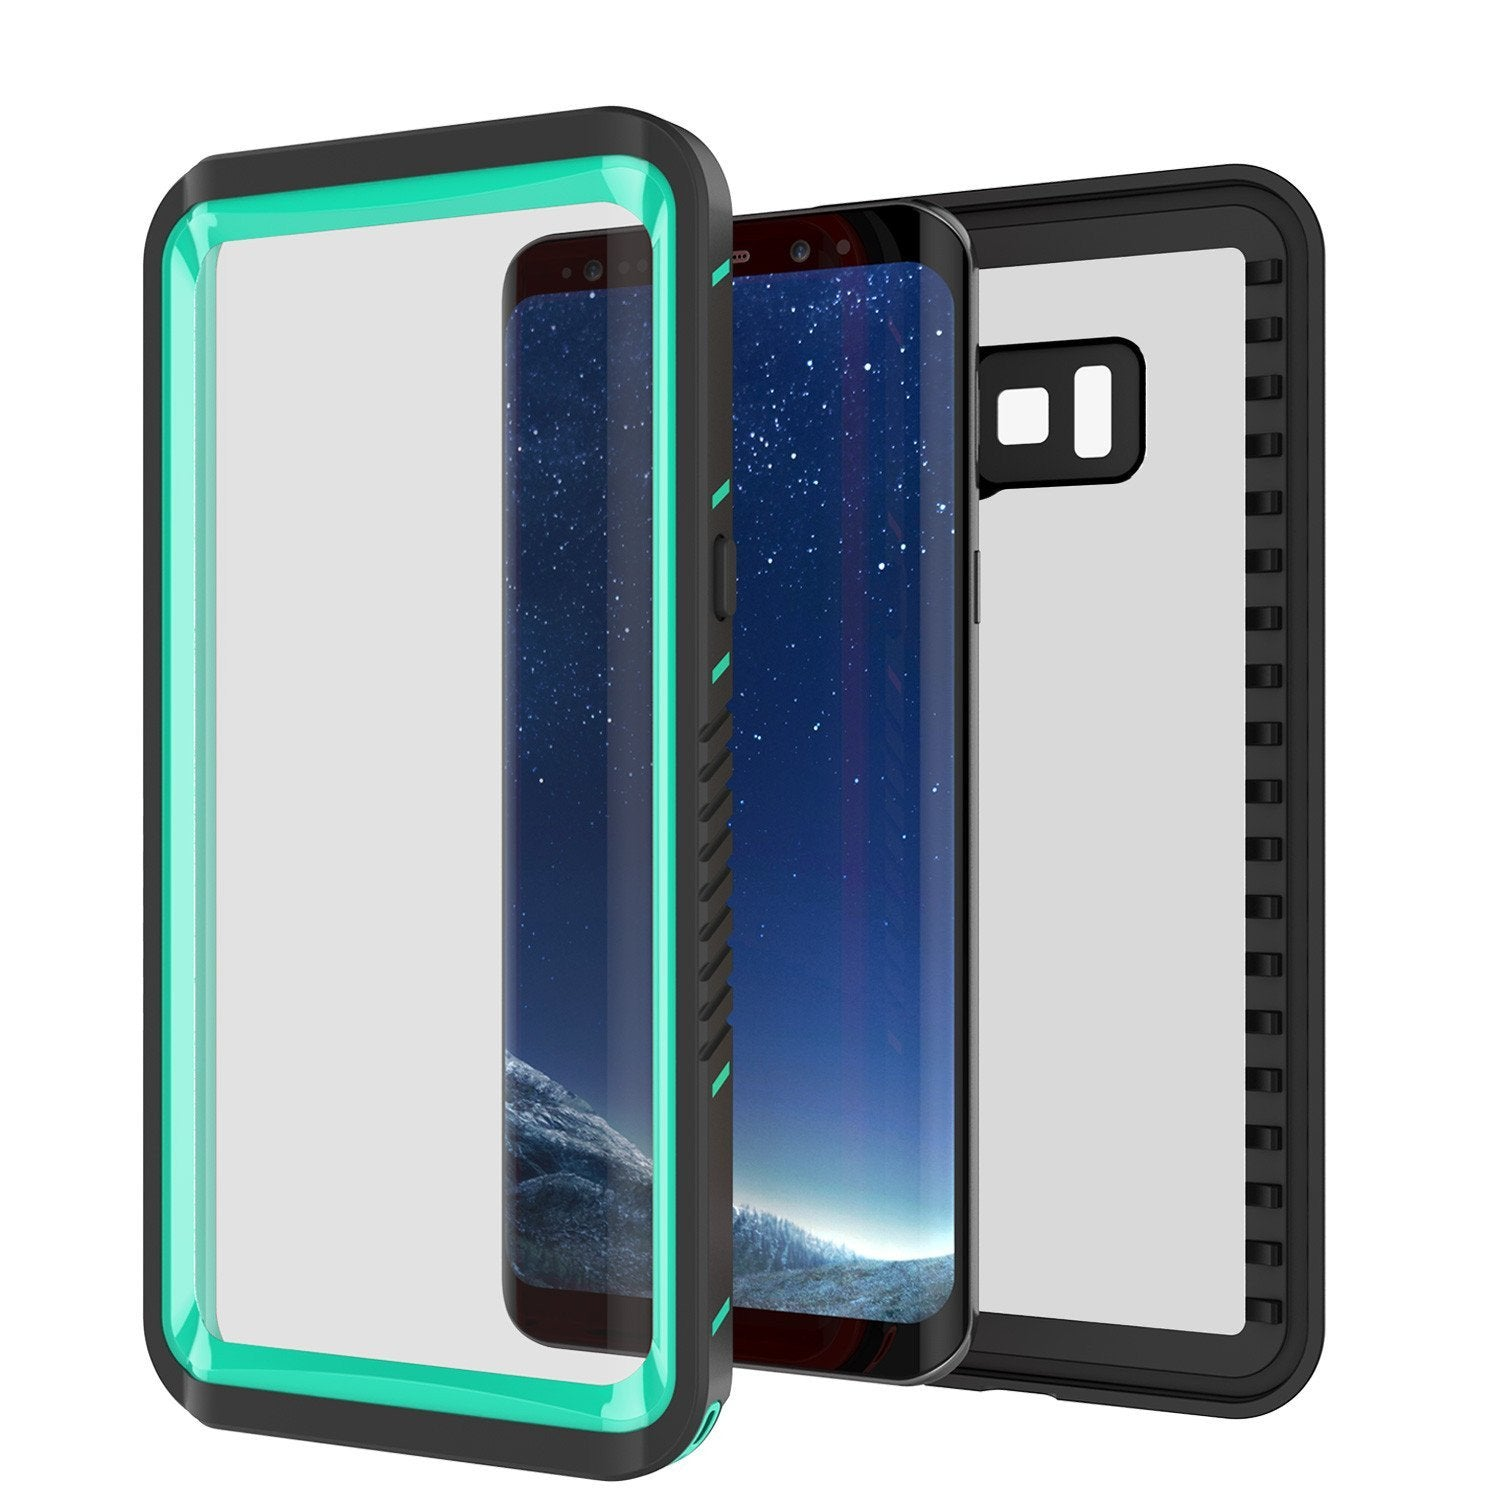 Galaxy S8 Plus Punkcase Extreme Series Slim Fit Armor Case [Teal]